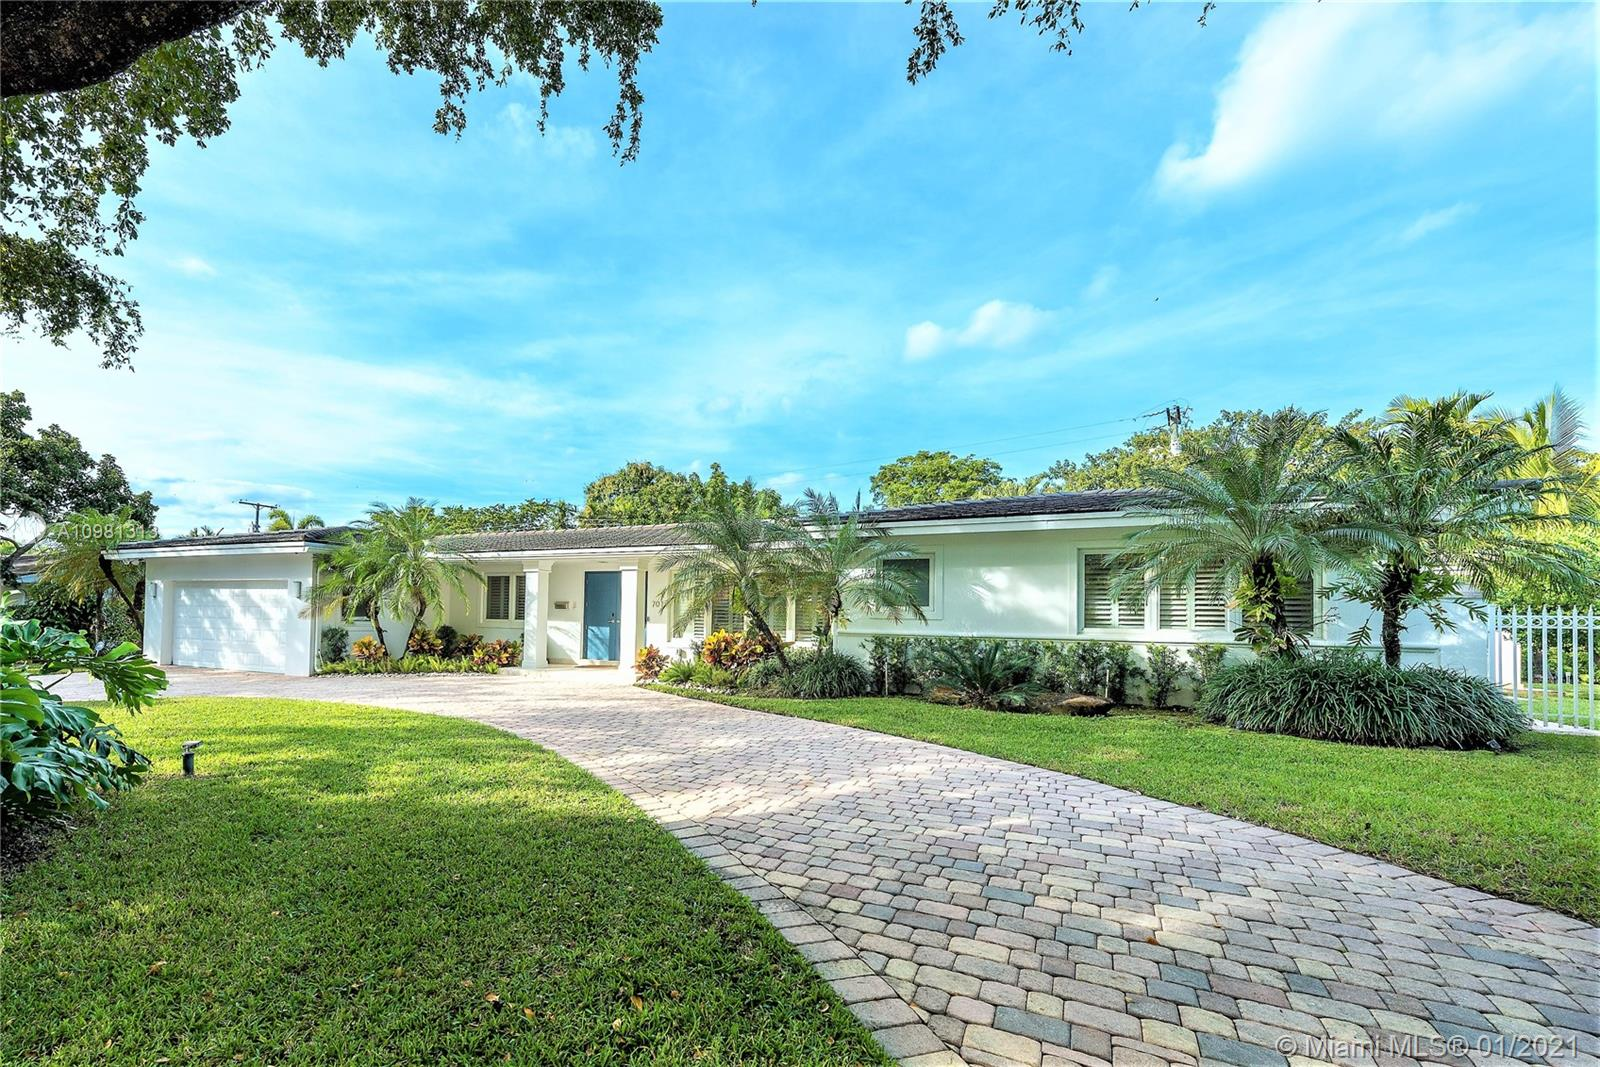 Amazing 1 story Home at the Platinum Triangle in South Gables, across from Gables States. Renovated in 2013. Recessed lighting. Music Sound System. Plantation shutters. Marble & wood floors. 8 years old roof. Heated pool. Ornare gourmet kitchen w/hood, Thermador gas cook top &Siltstone counter top. Spacious master bedroom, bath & walk-in closet. 2nd bedroom/office w/en-suite bathroom, sliding doors, & window, no closet, could be part of the master. Each bedroom w/ his own bath. Family. Amazing laundry room. All high impact windows. 3 A/C units (2 are new). Septic Tank and Drain Field. Beautiful garden and green area. 500 Gl Propane powered Generator. Circular Driveway. Nest sec system. Per Owner 4,189 SF under A/C. Please see Broker remarks for showings.